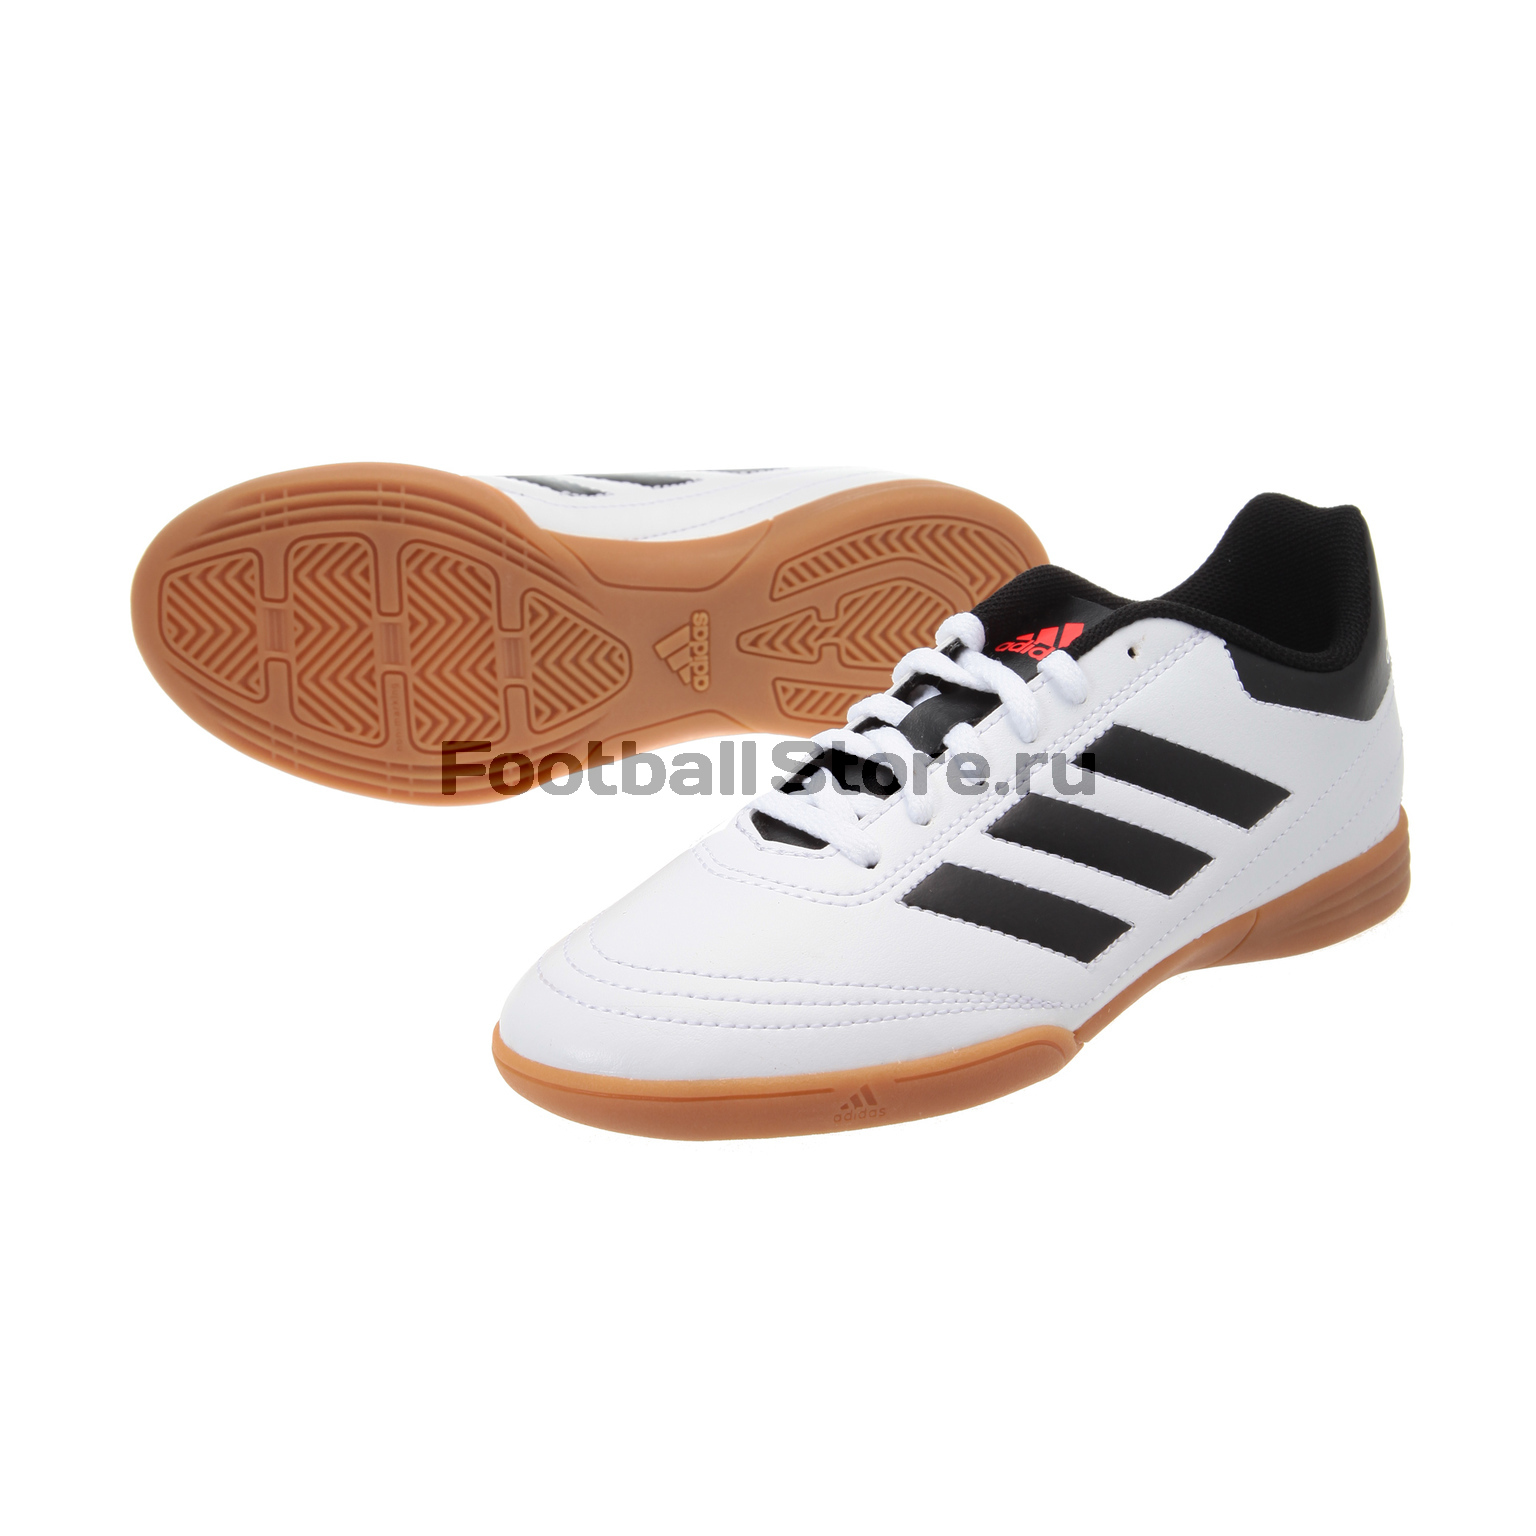 Бутсы Adidas Обувь для зала Adidas Goletto VI IN JR AQ4294 new in stock vi 810640